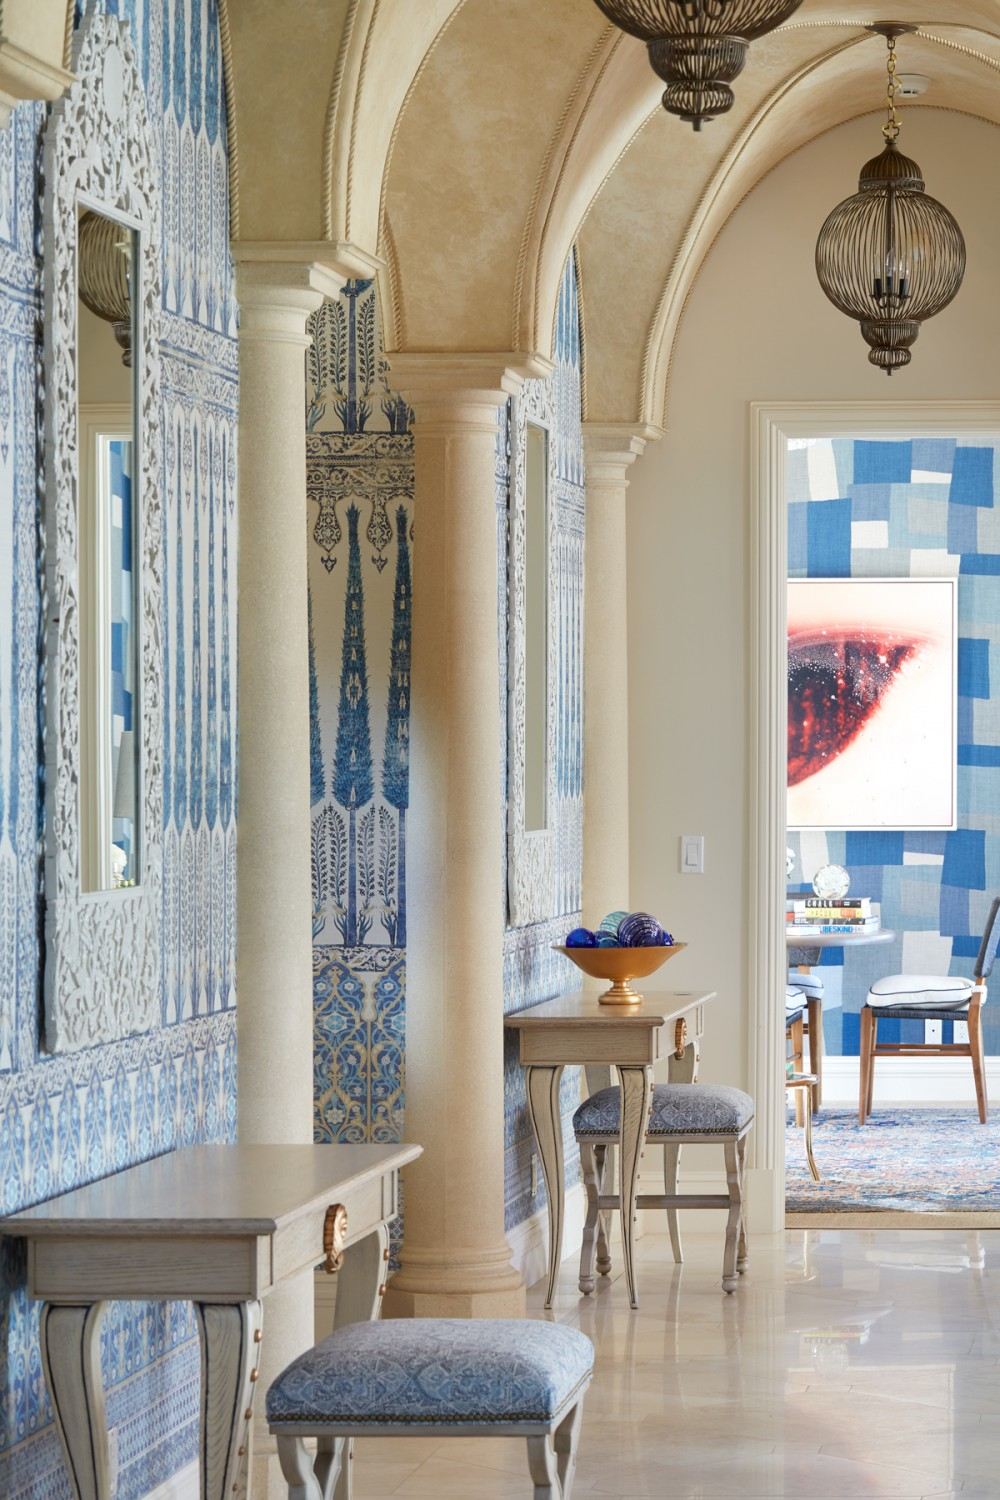 Moroccan-influenced arches along with patterned grasscloth wallpaper and panels exude a welcoming warmth in the home's entryway.